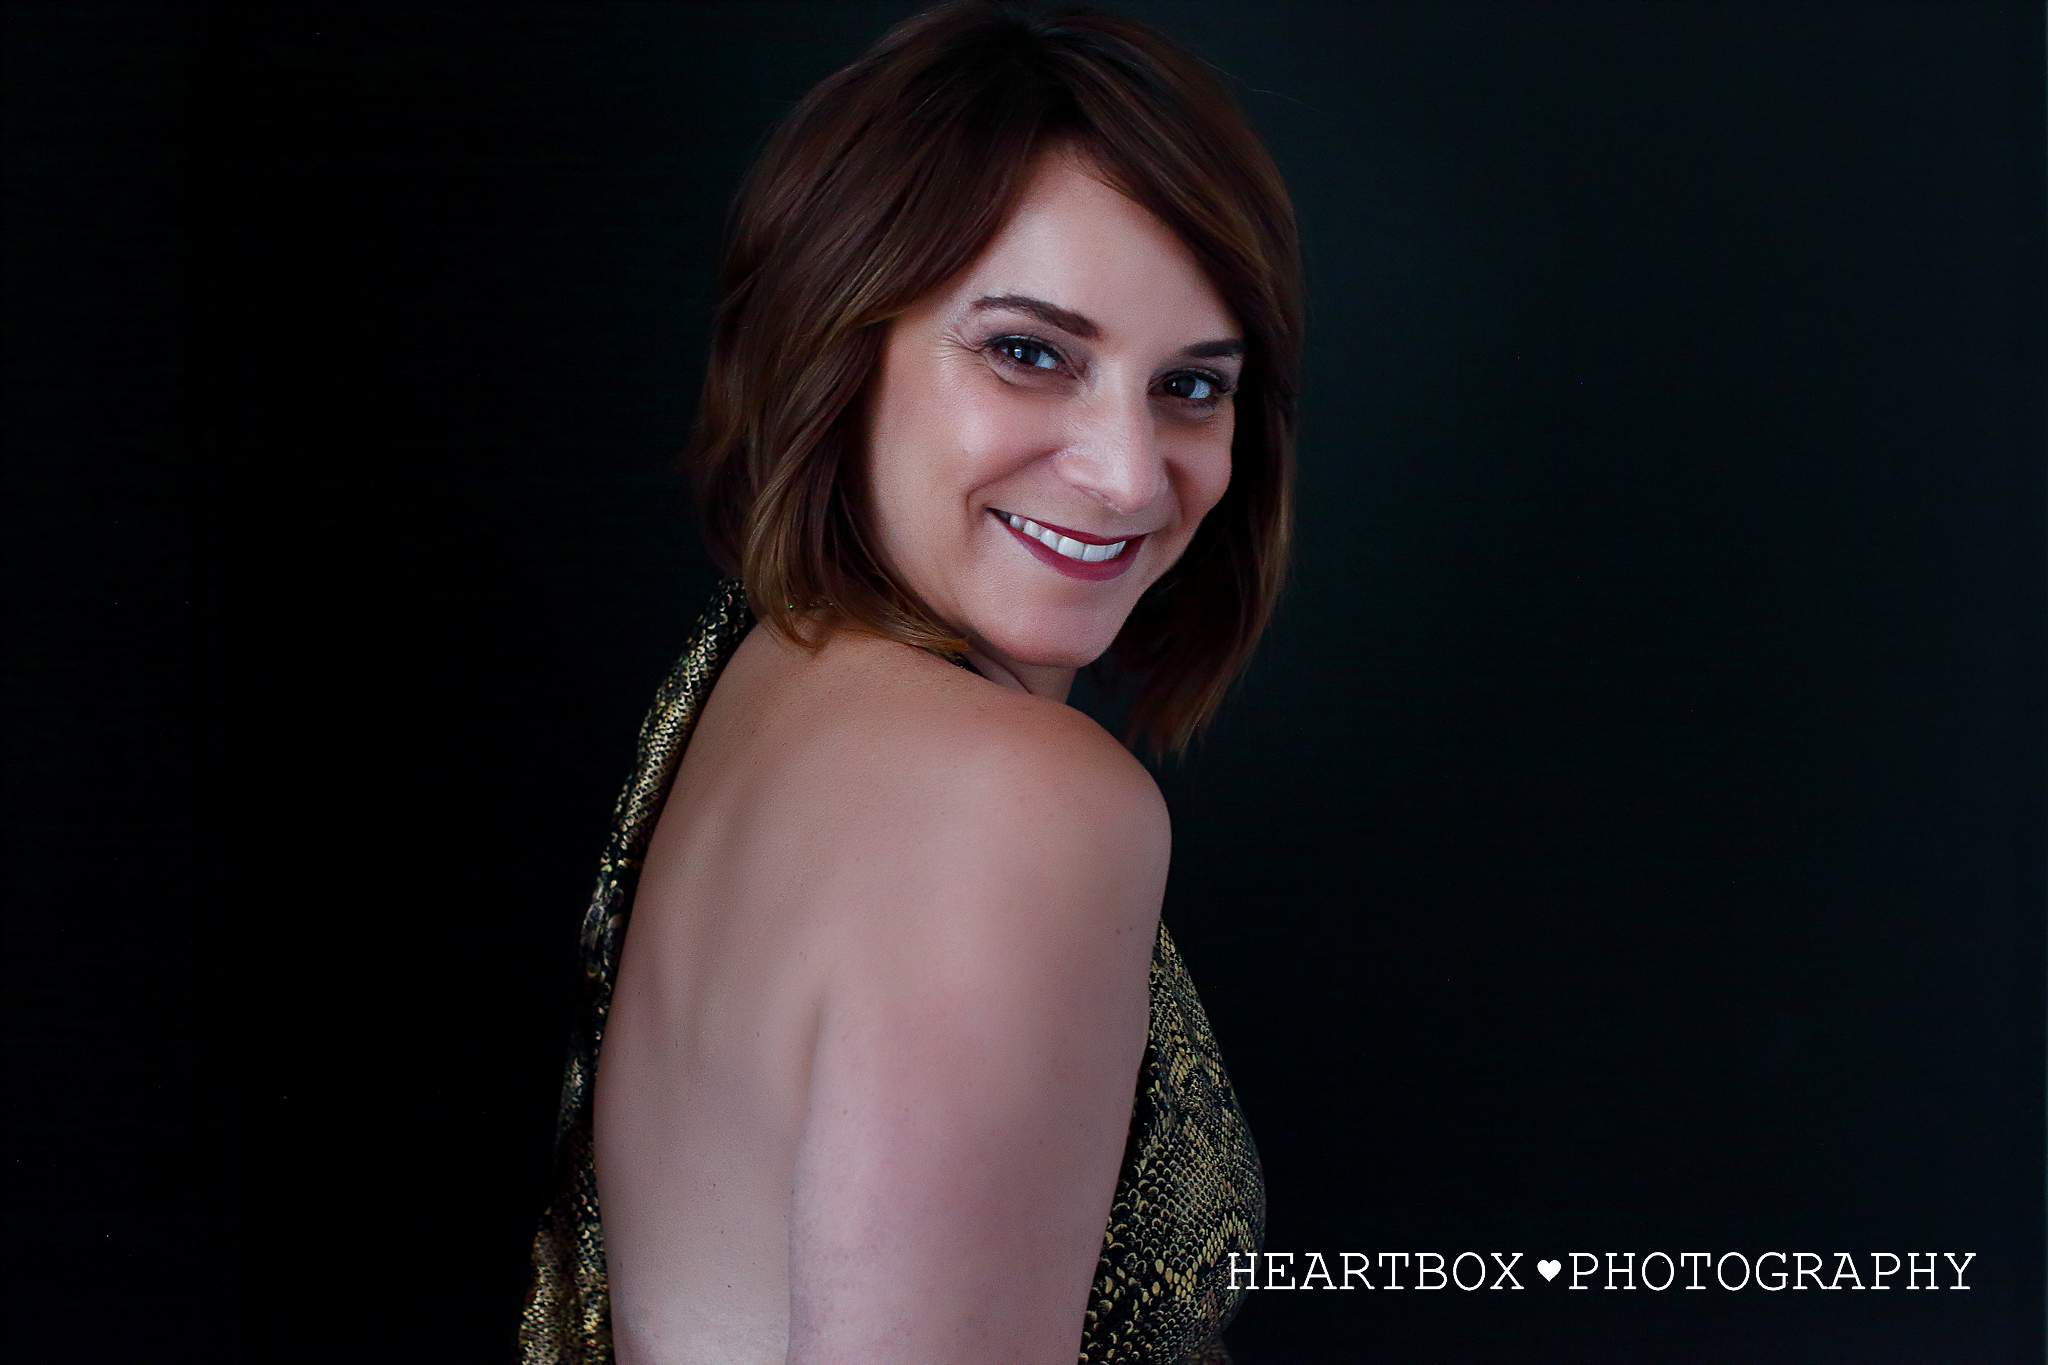 Portraits by Heartbox Photography. Copyright 2017. All rights reserved._0781.jpg